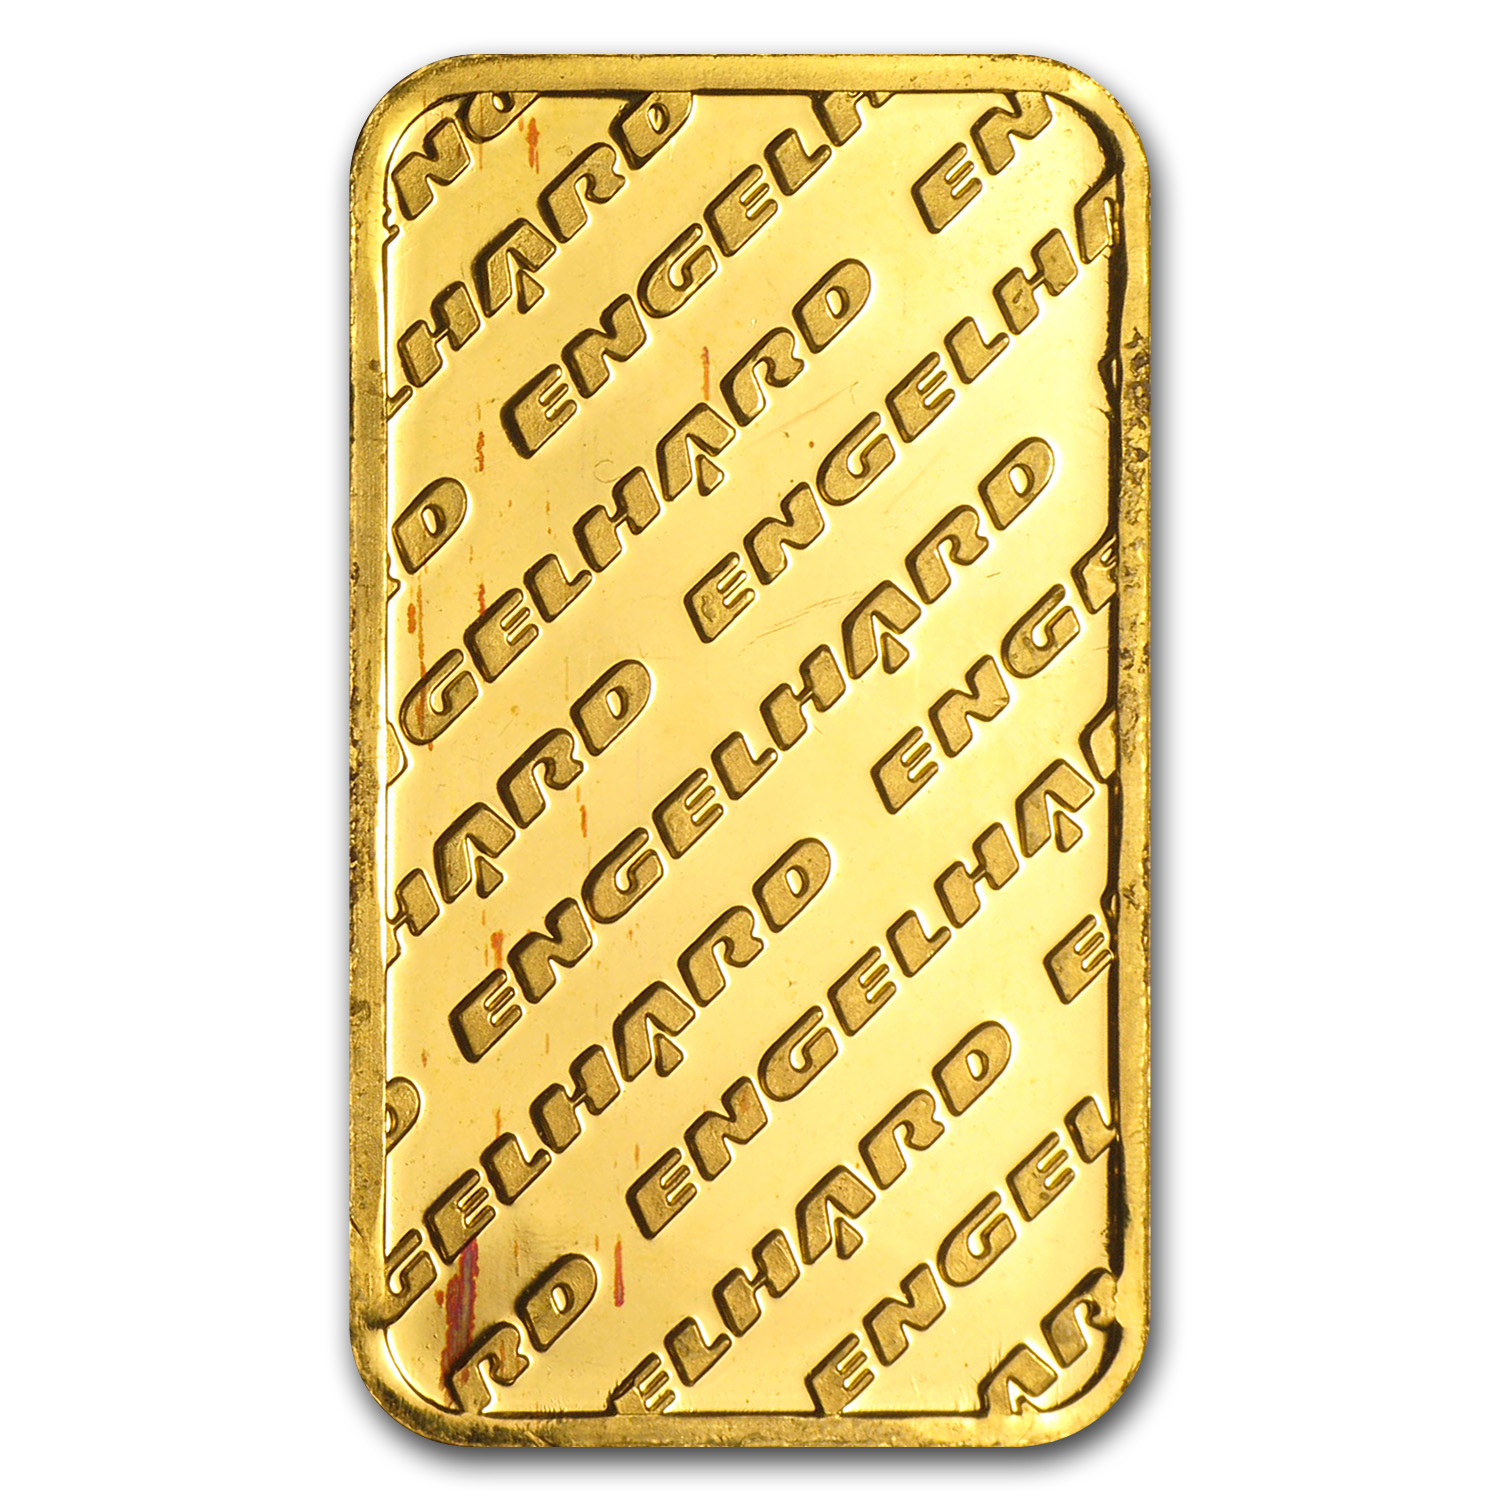 1/2 oz Gold Bar - Engelhard